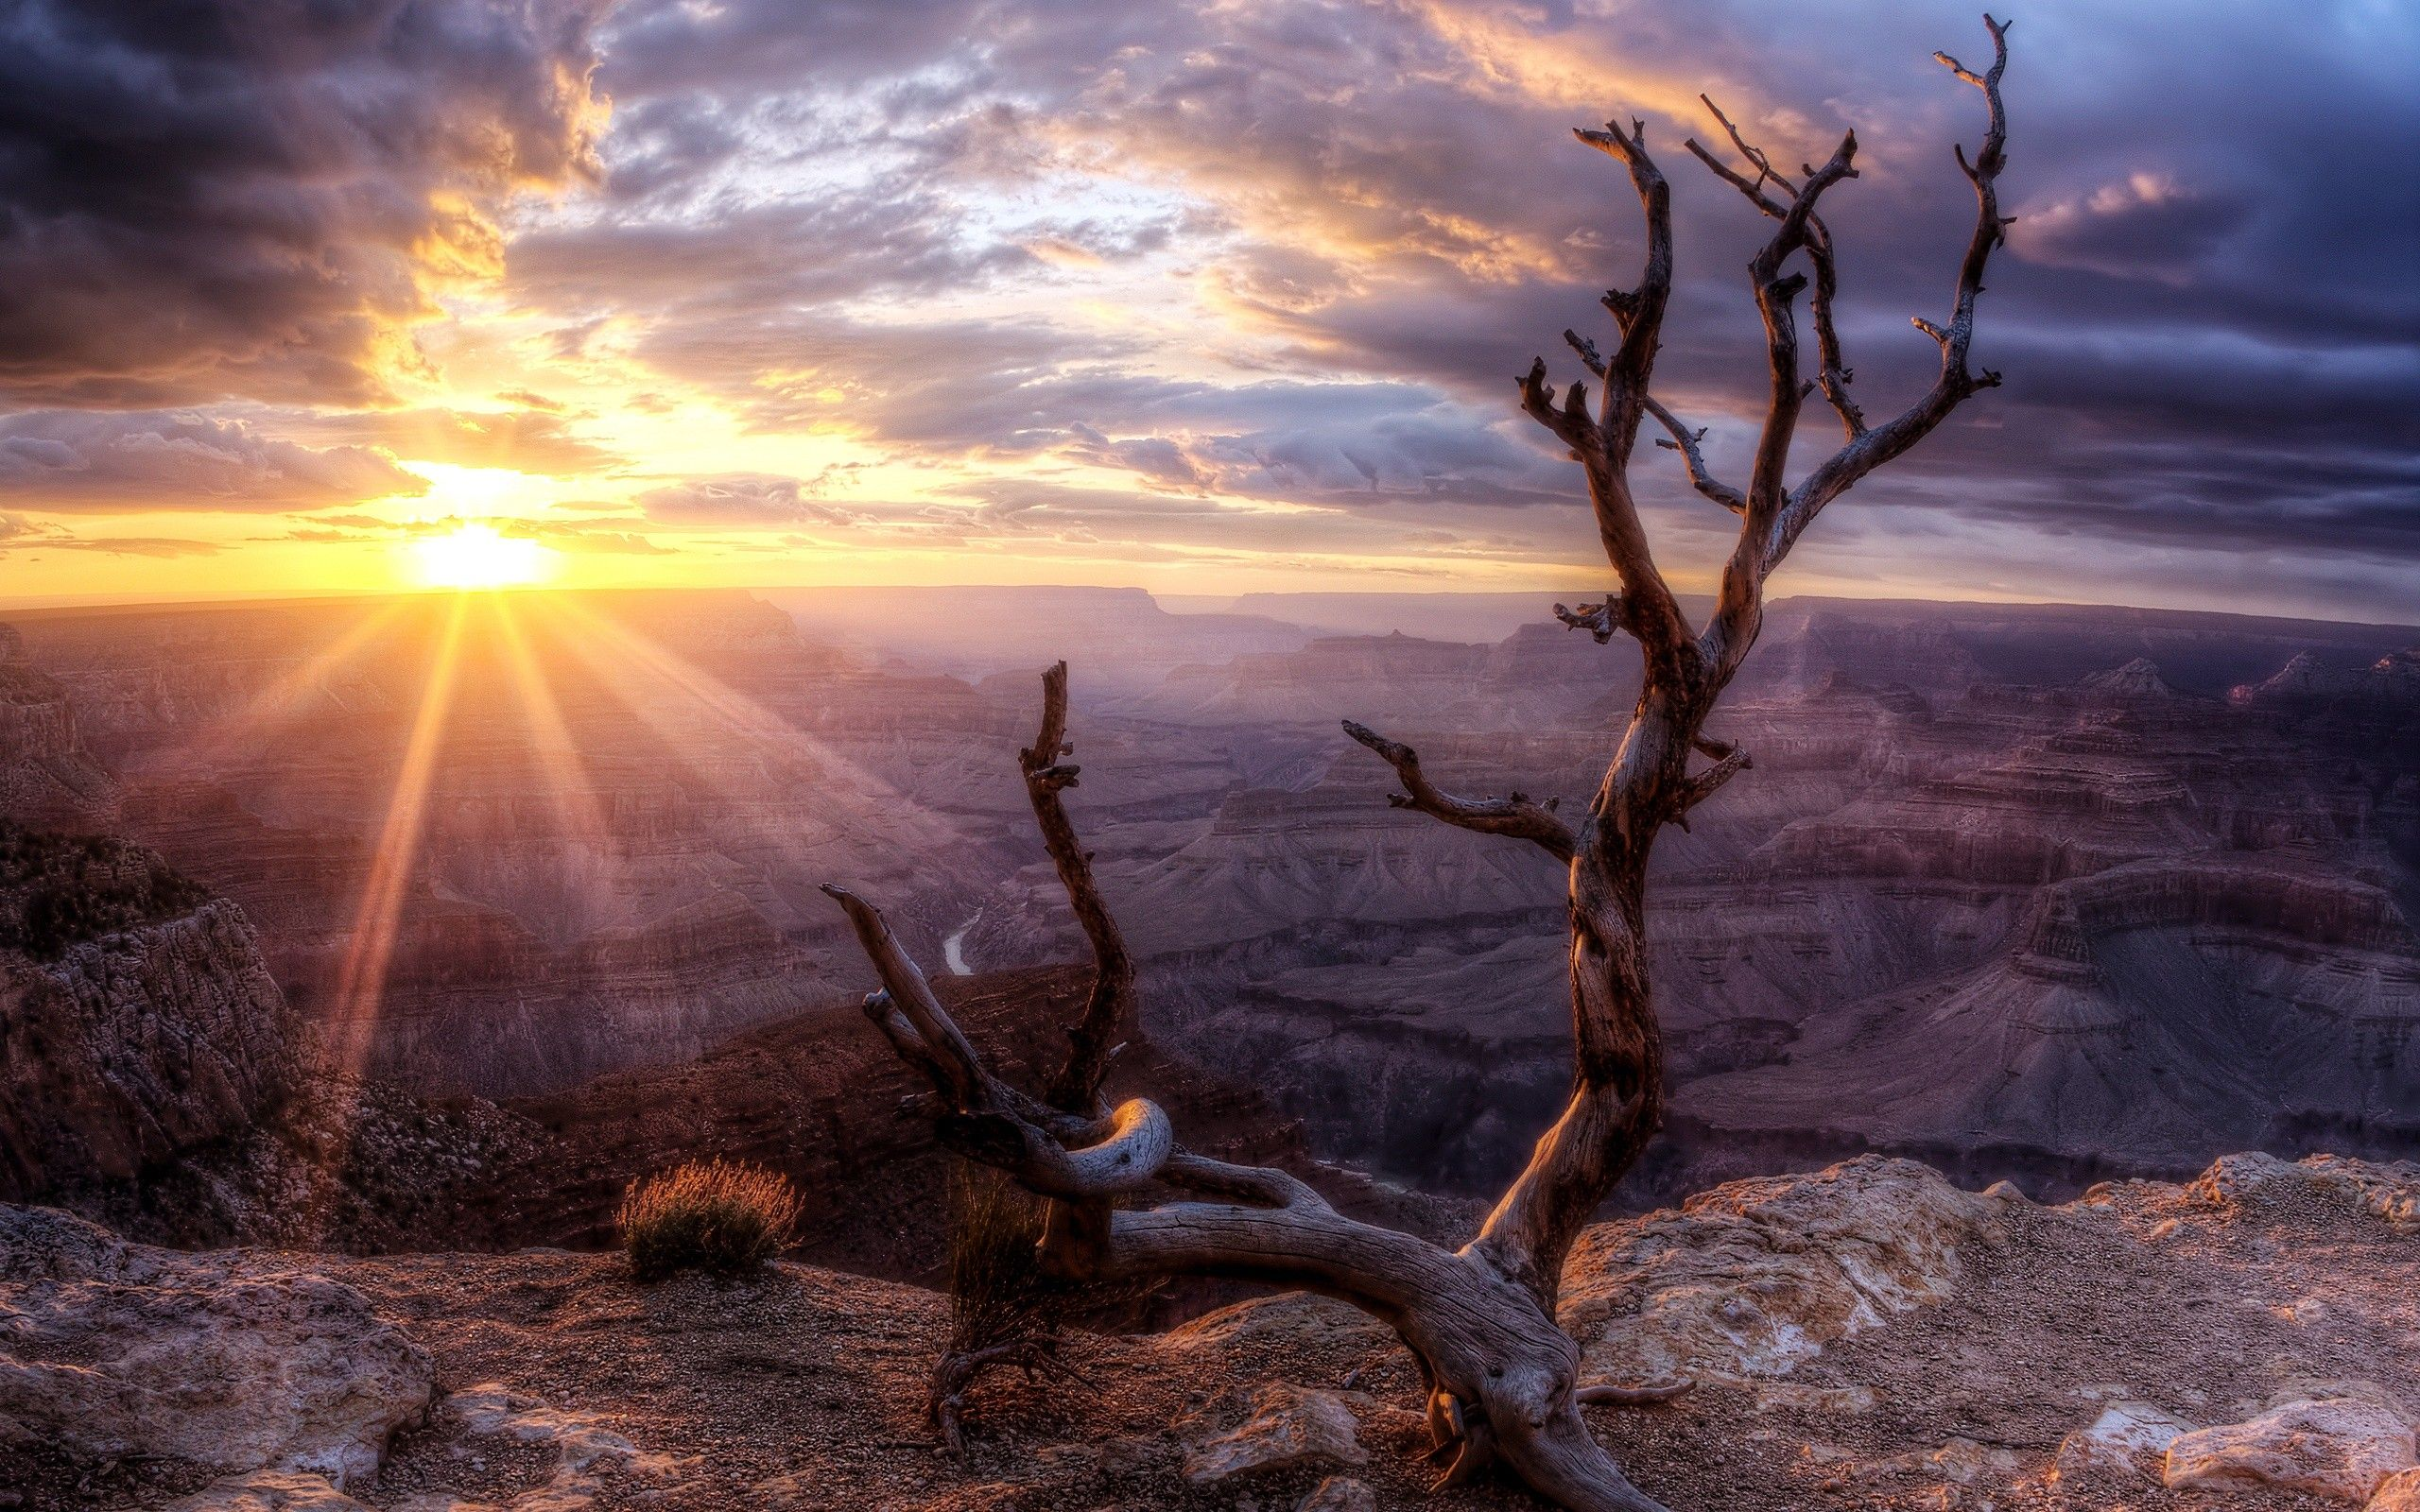 Arizona Sunrise Wallpaper High Quality Resolution #699 2560x1600 px 1.16 MB City flag hd iphone ...